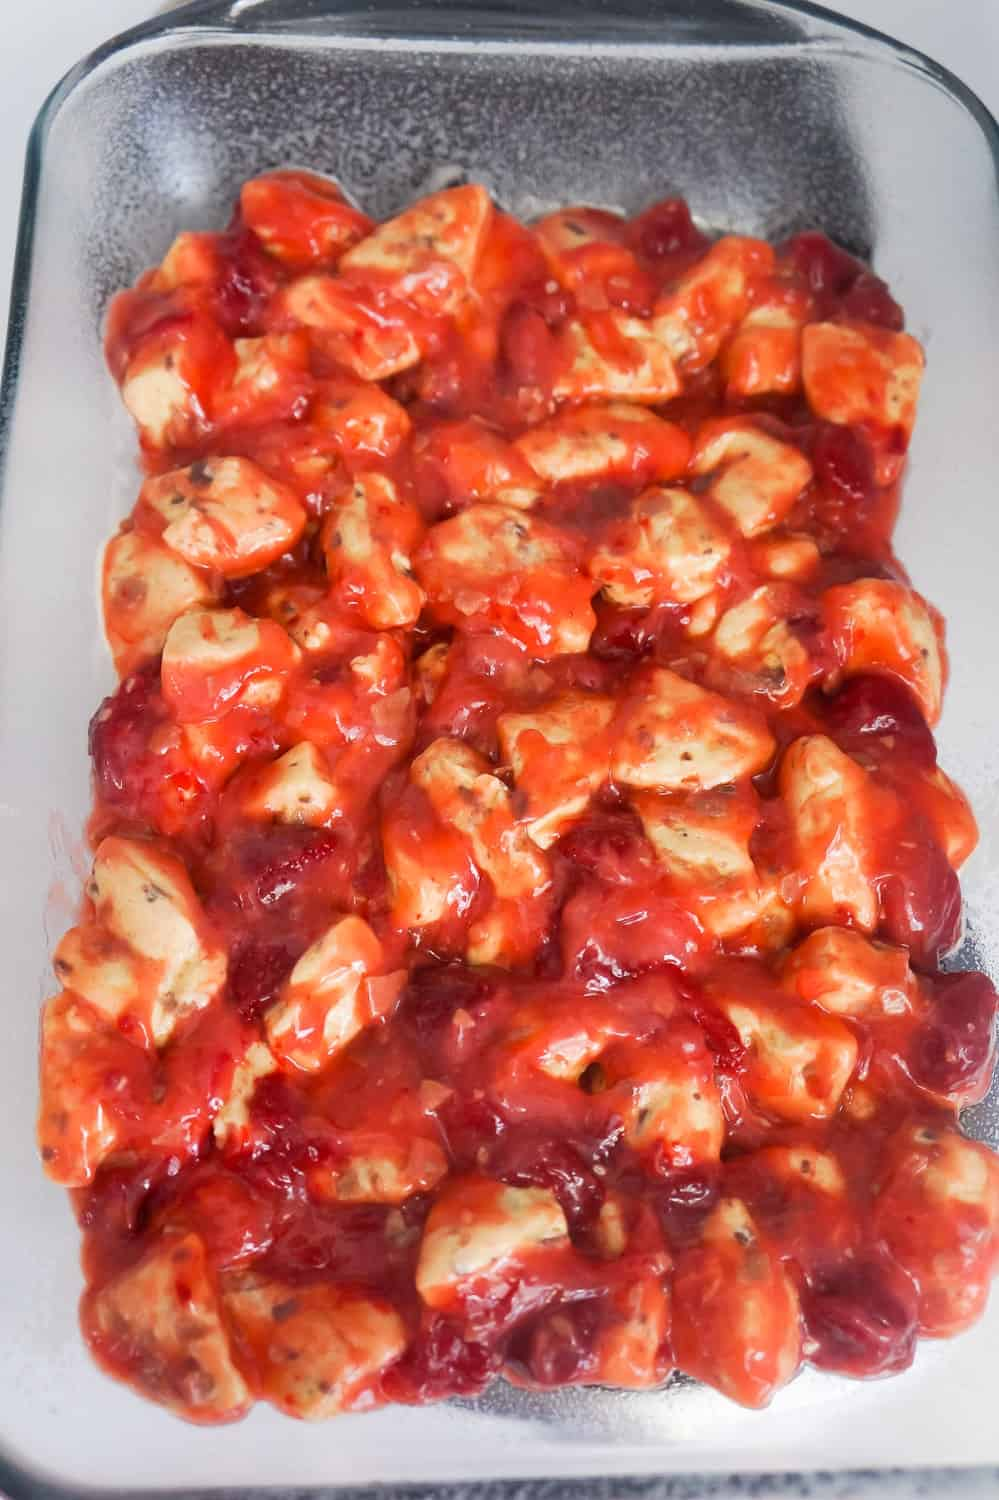 uncooked strawberry cinnamon bun casserole in baking dish